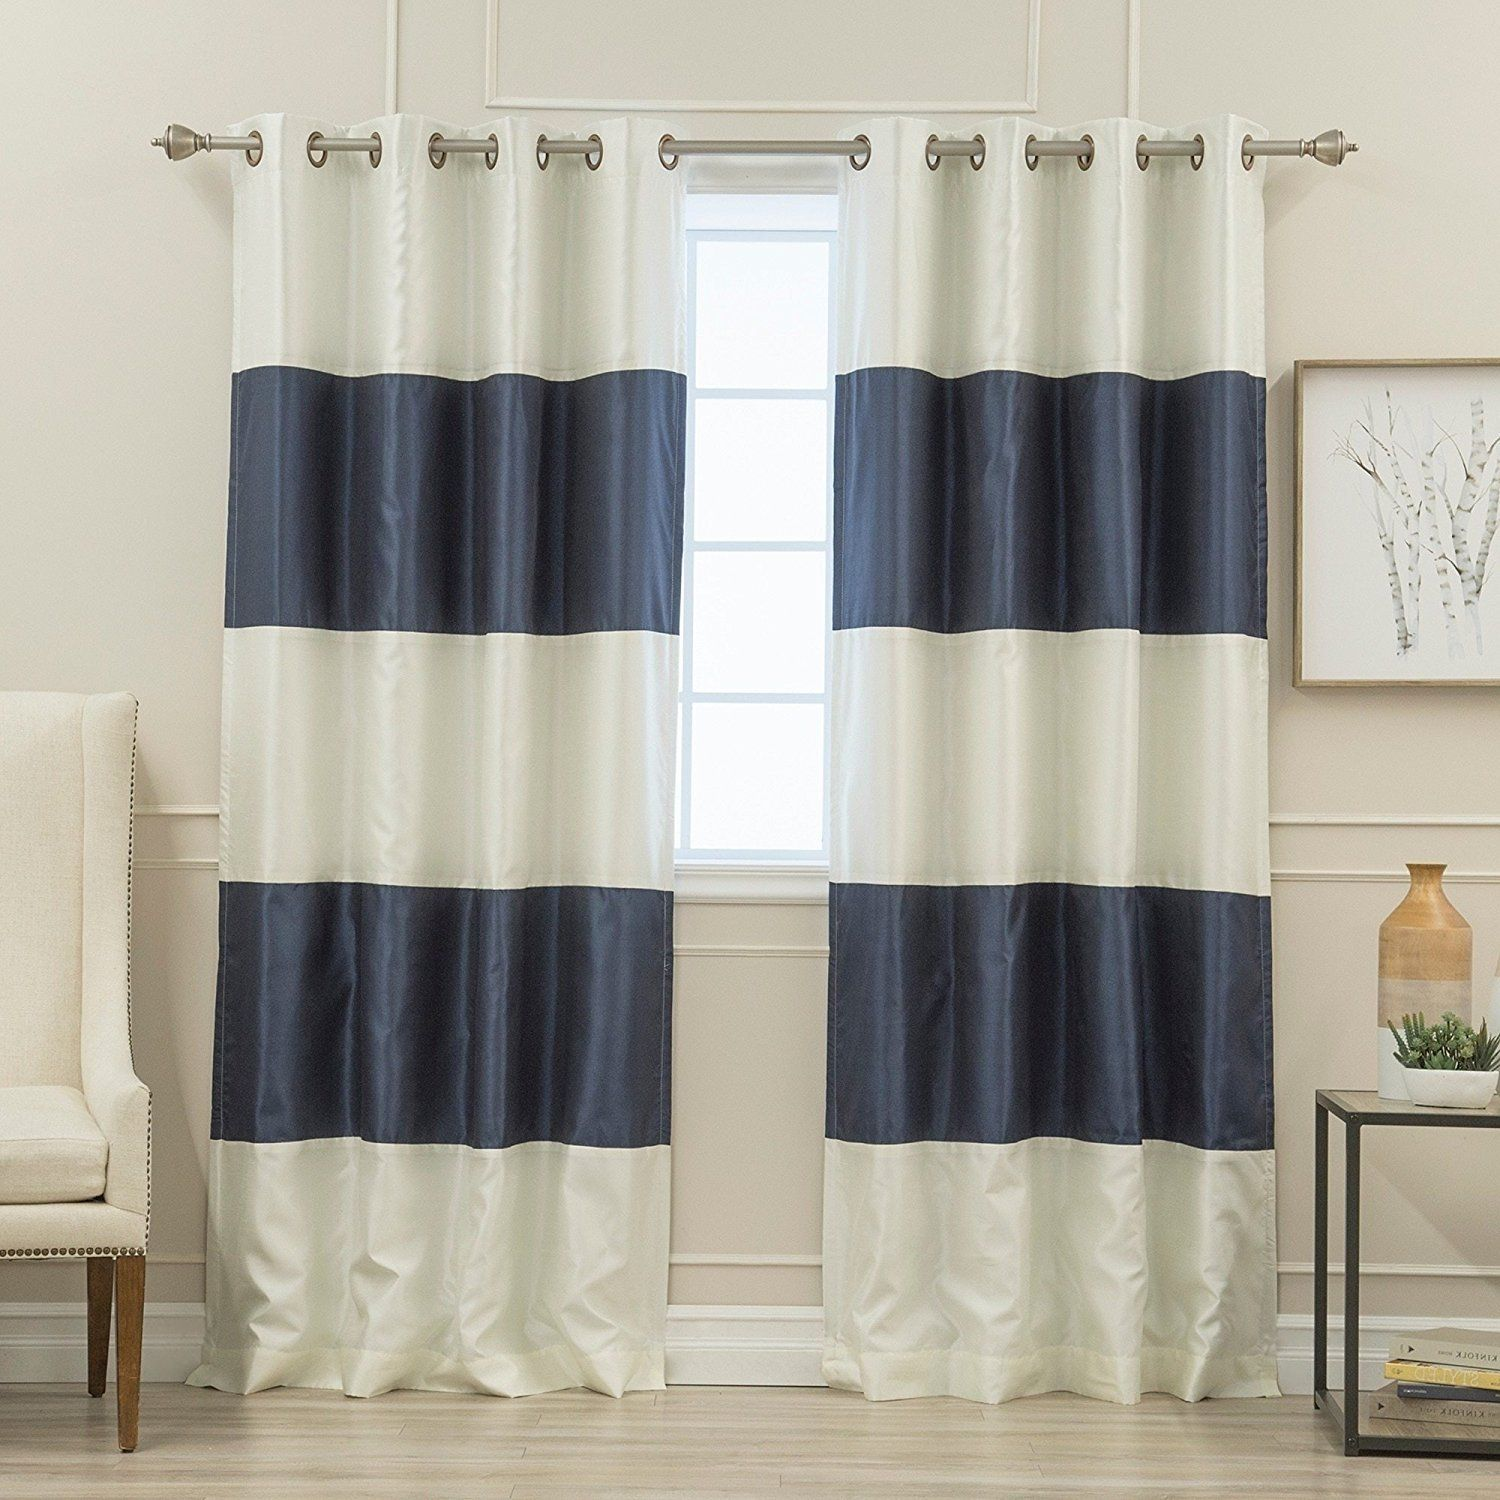 horizontal striped navy with blue curtainsfor zq interior curtain and white plus hilarious home curtains as frantic picturesque flossy wells decoration